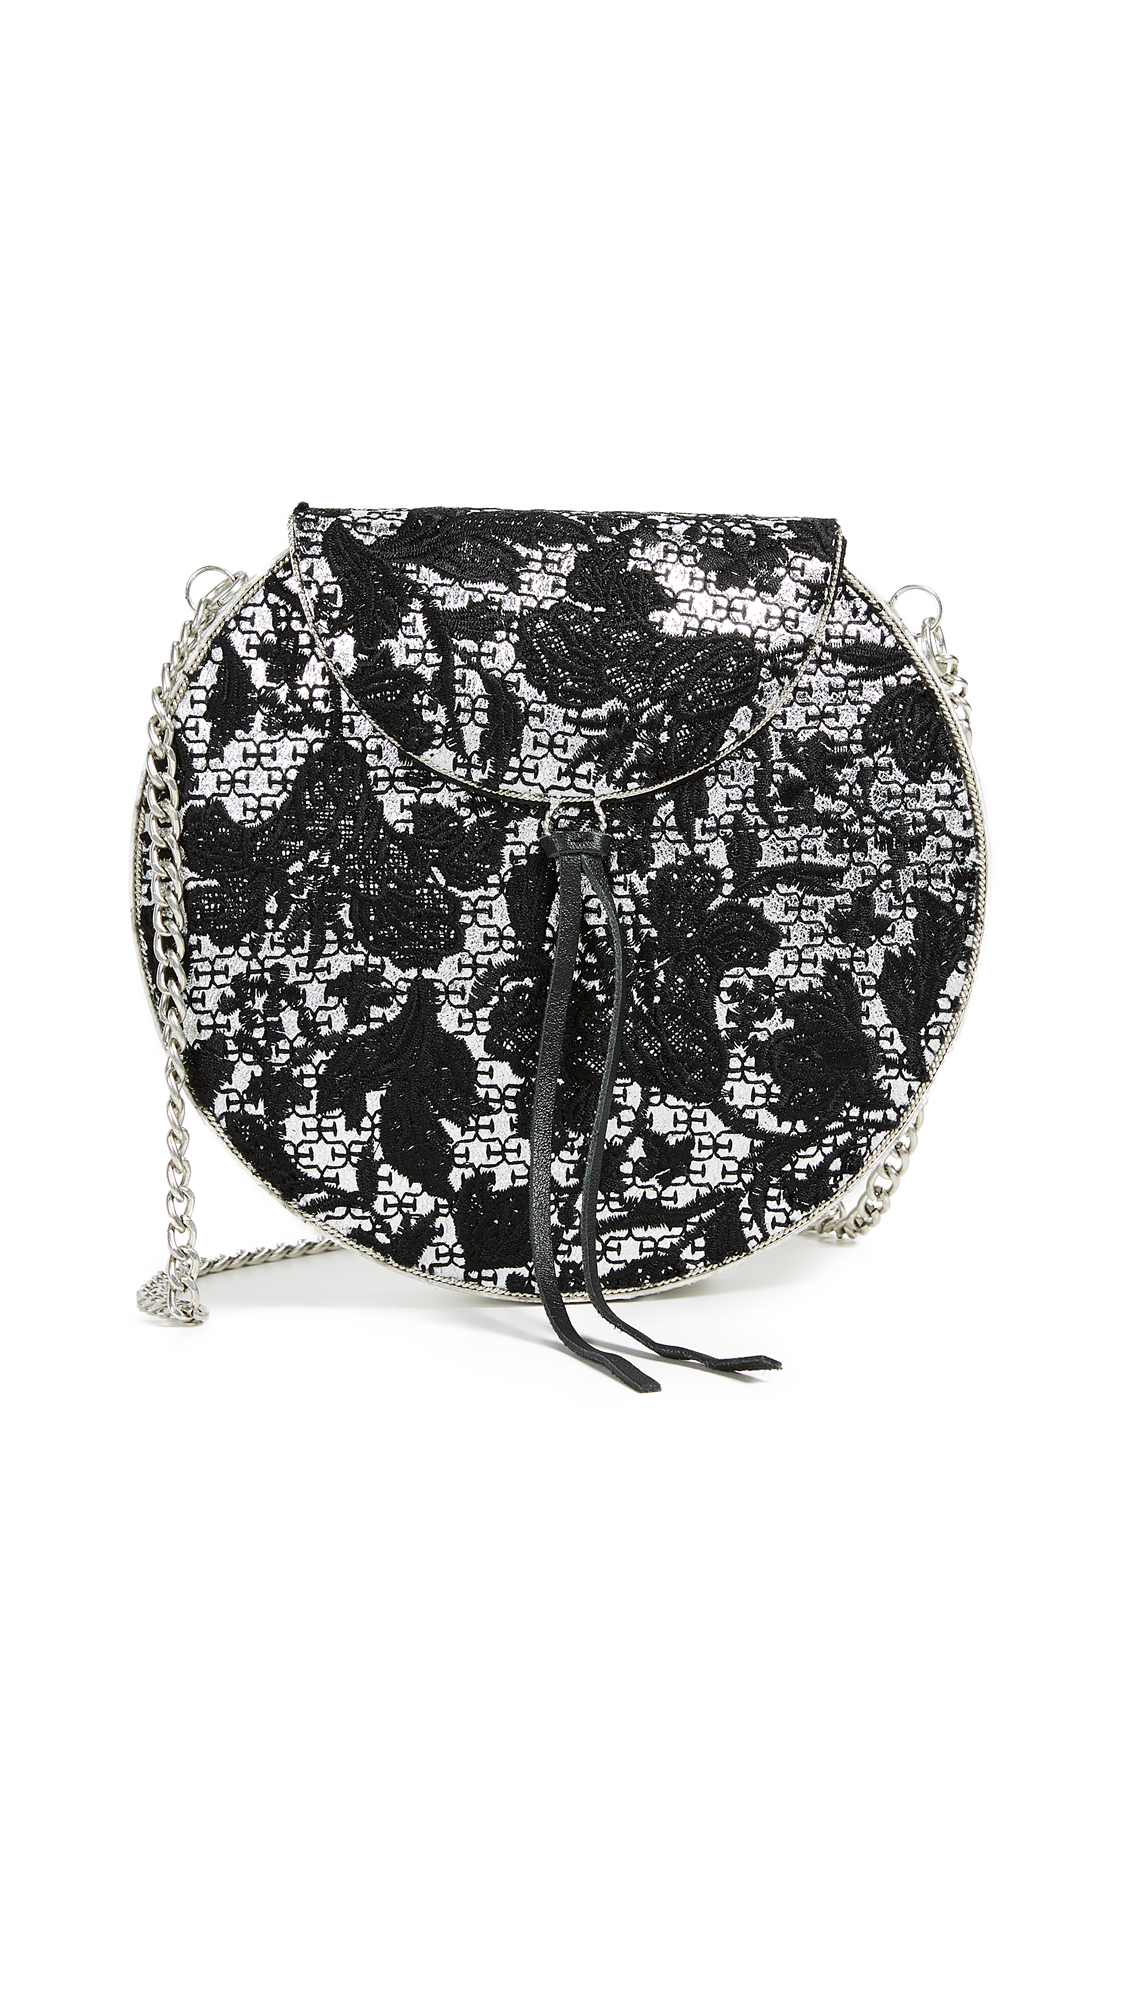 Sam Edelman Beatrice II Box Clutch In Silver Floral Embroidery